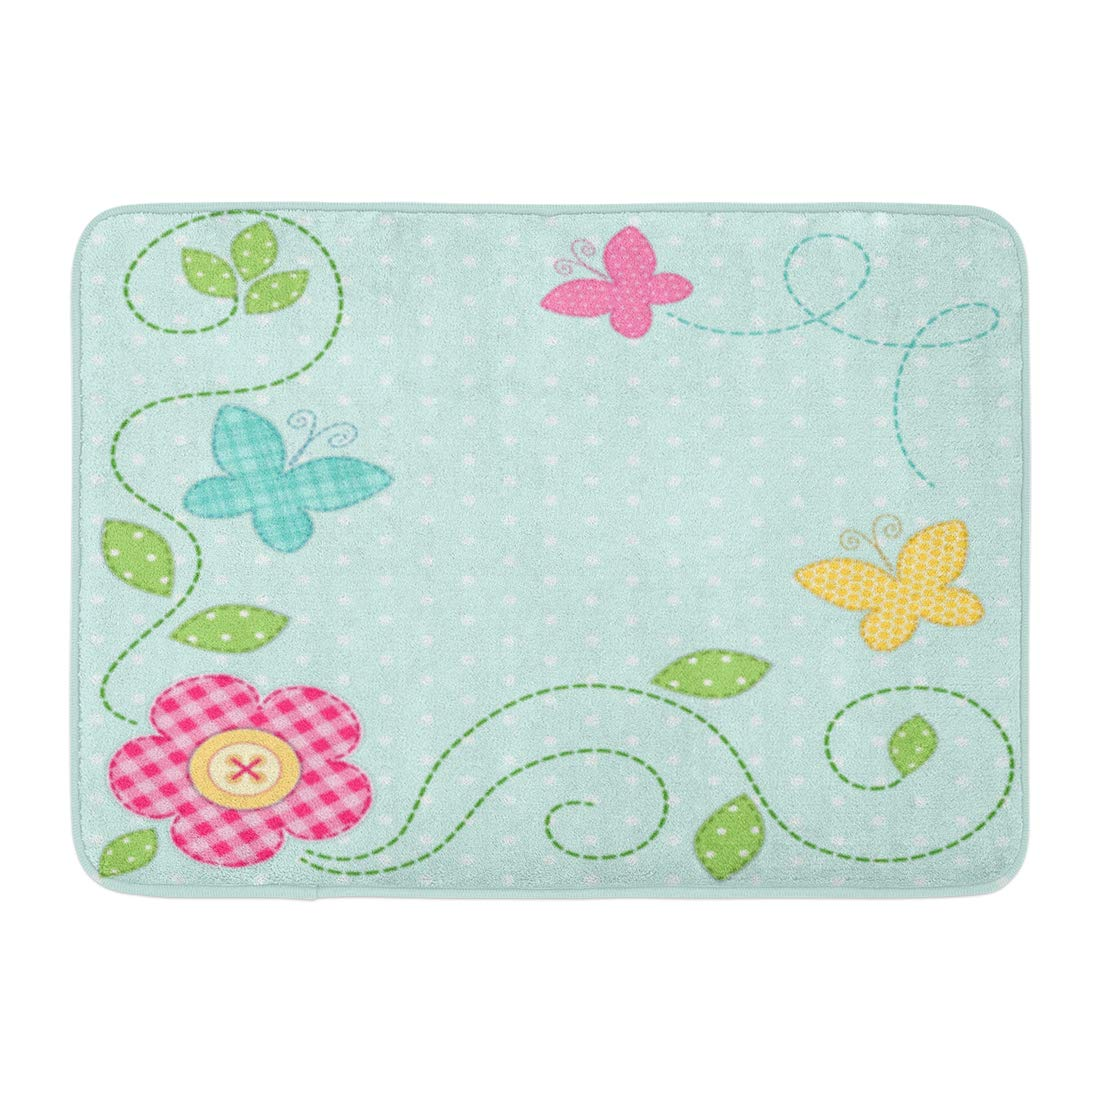 GODPOK Shabby Dot Cute Retro Spring As Patch Applique of Flowers and Butterflies Baby Patchwork Rug Doormat Bath Mat 23.6x15.7 inch